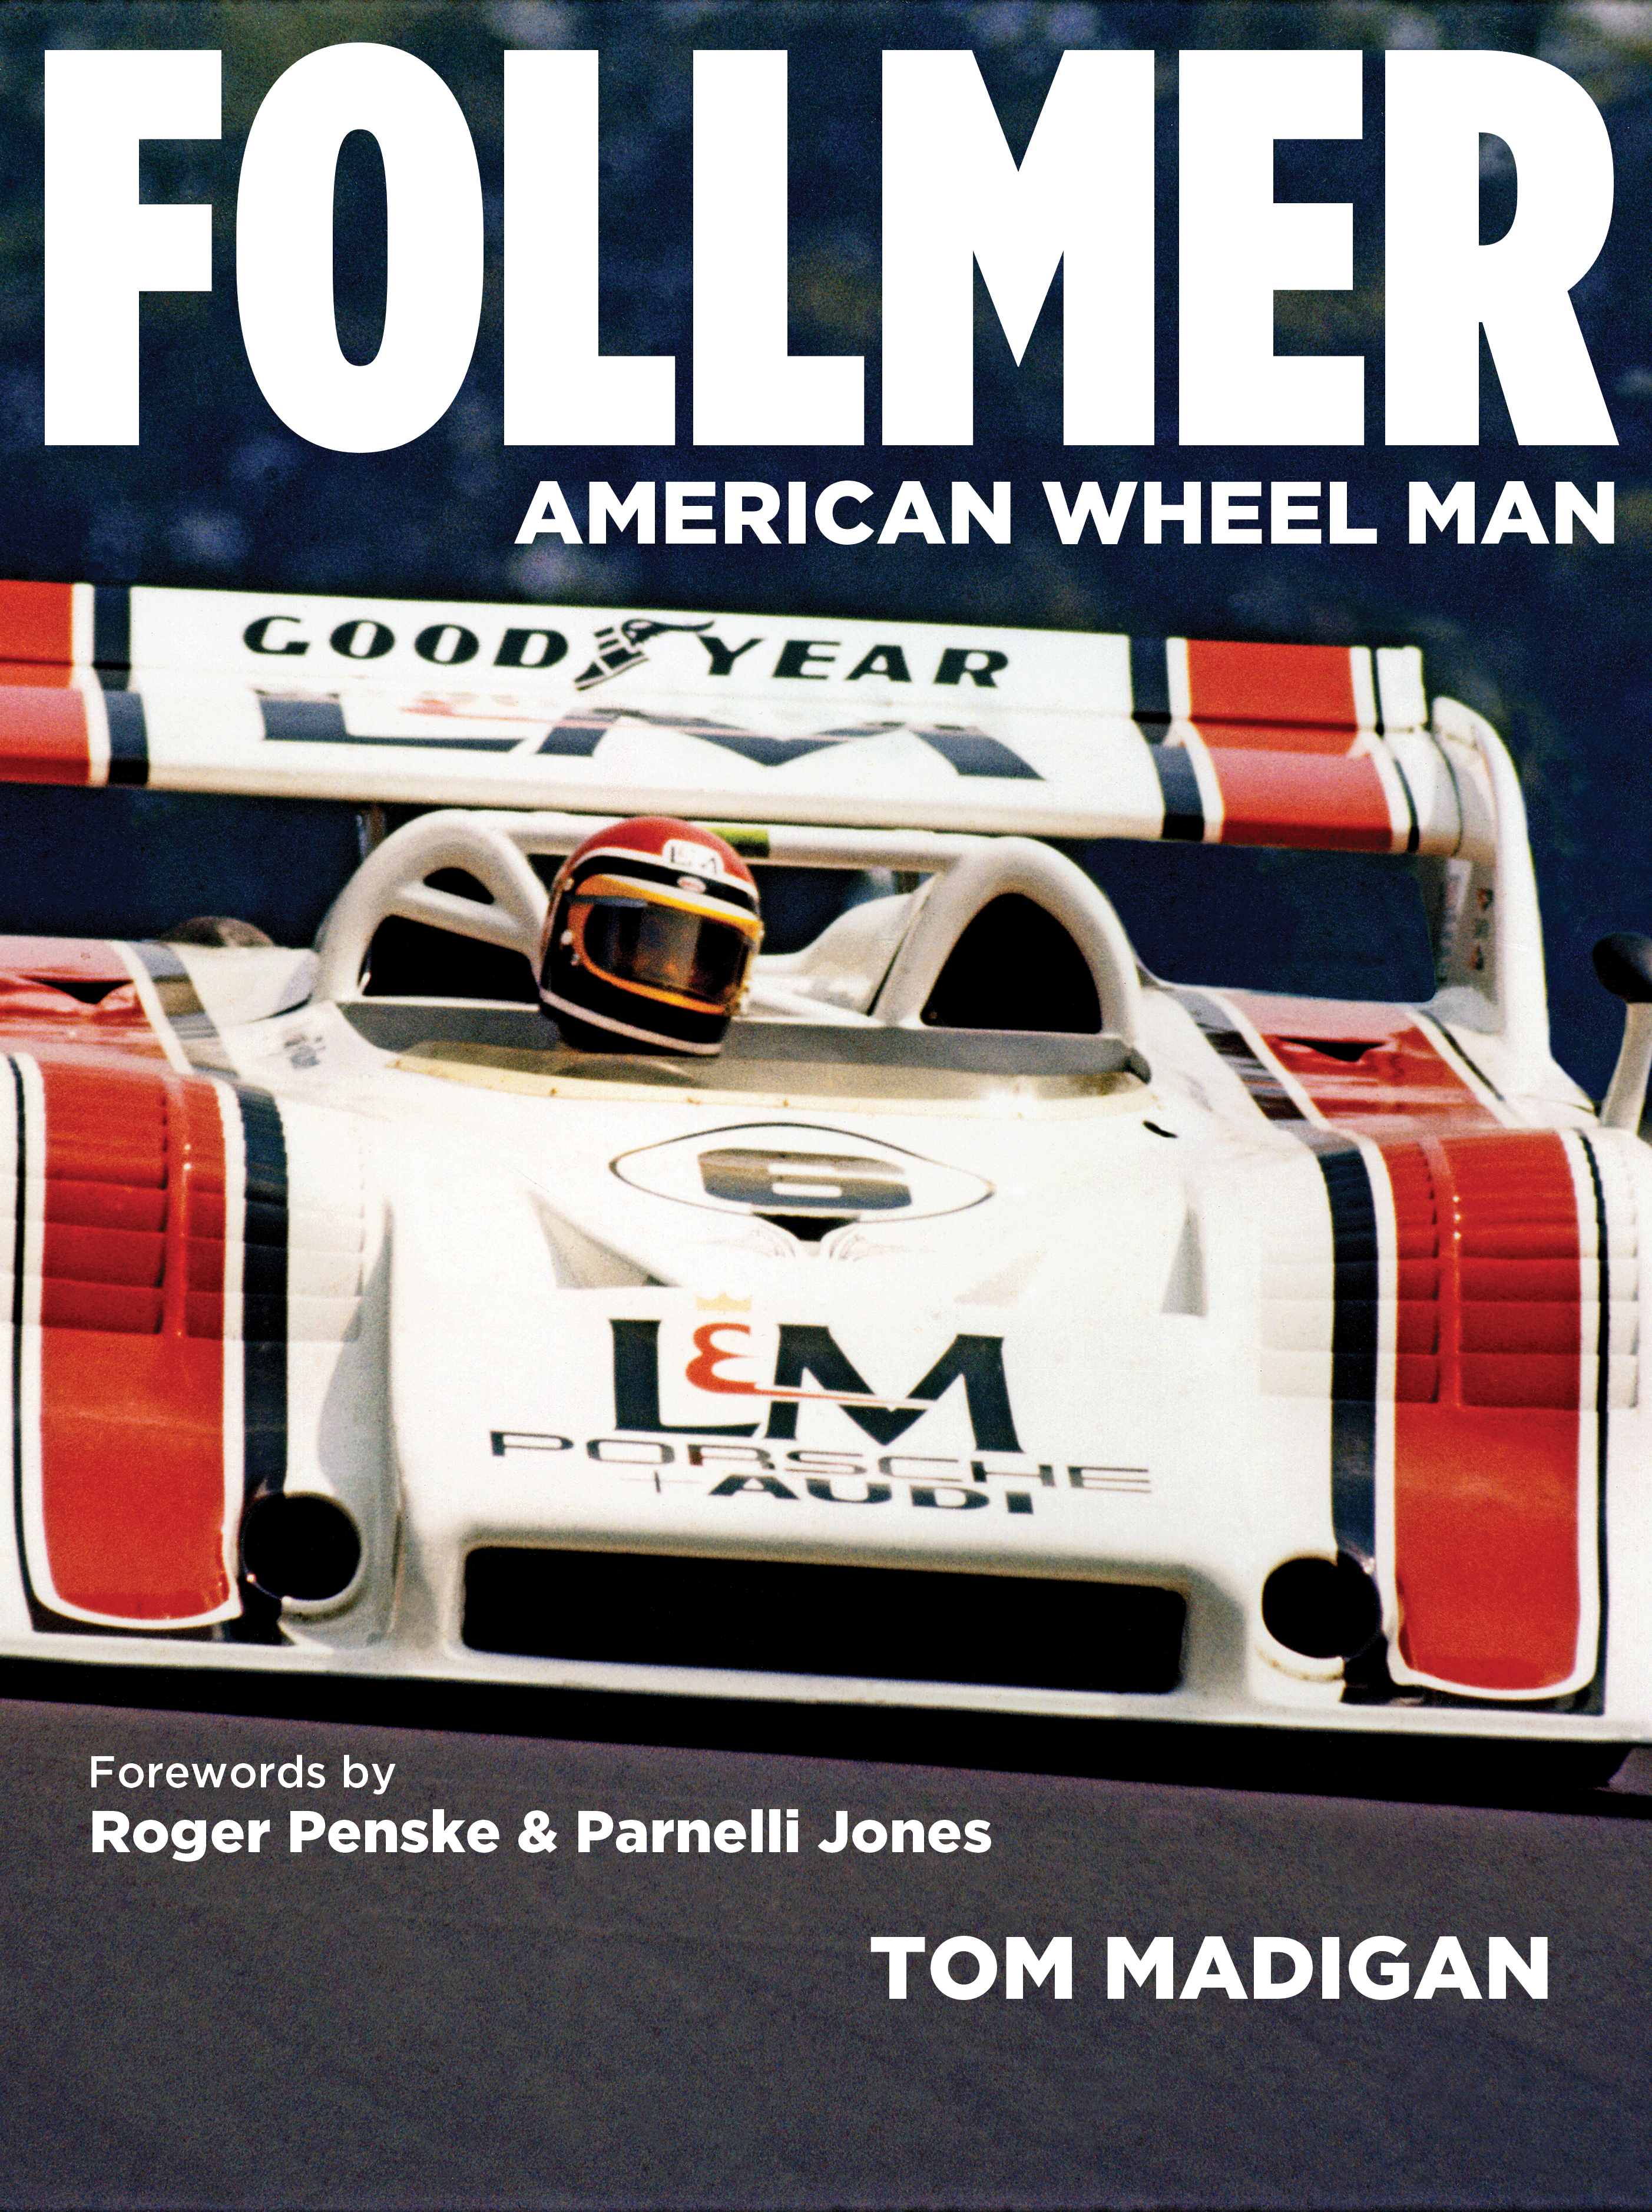 Review: George Follmer; American Wheelman